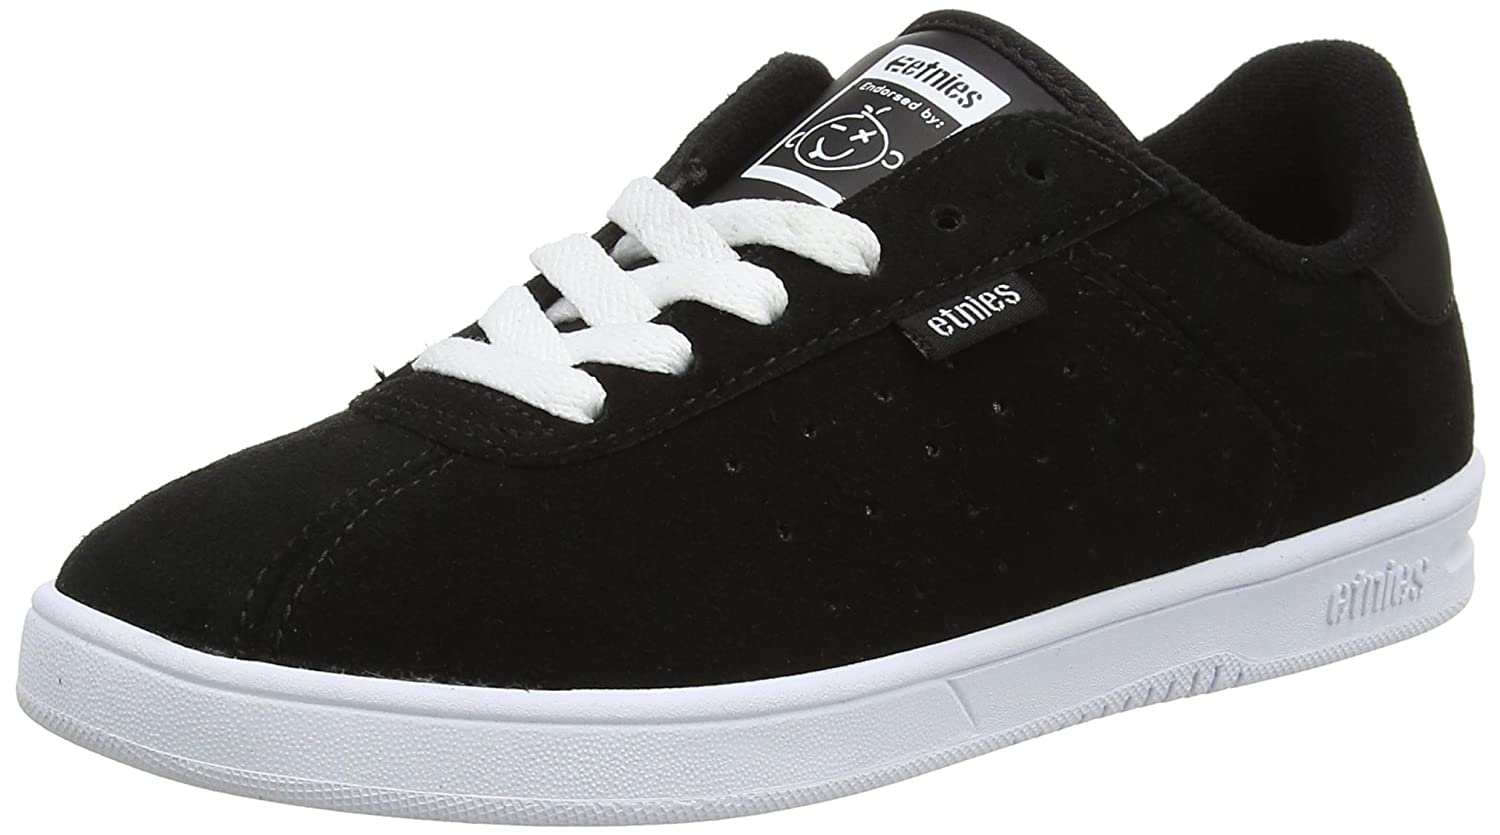 Etnies Women's The Scam W's Skate Shoe B01IE6YQRE 8 B(M) US|Black/White